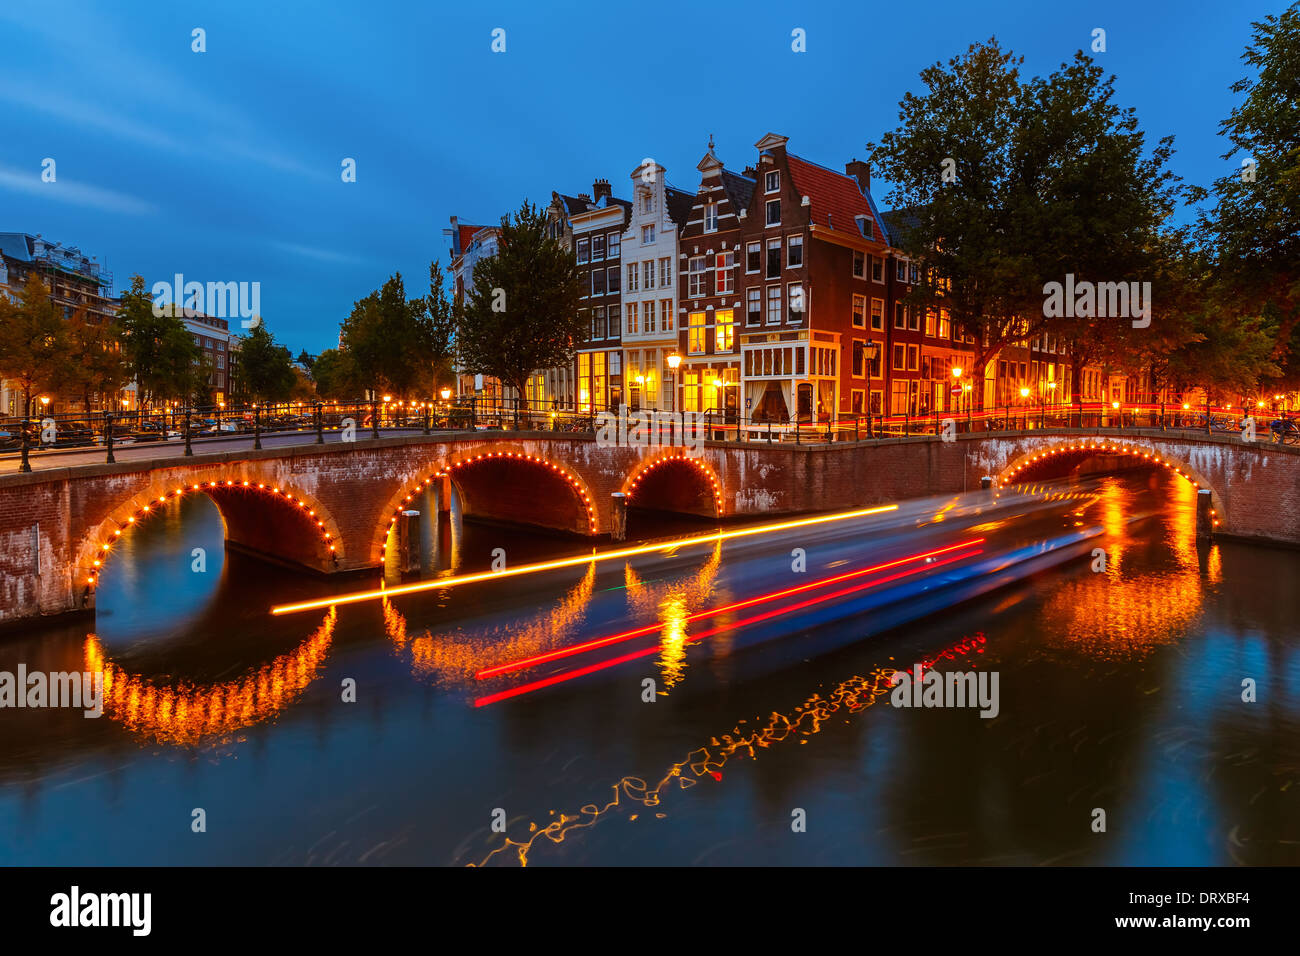 Les canaux d'Amsterdam Photo Stock